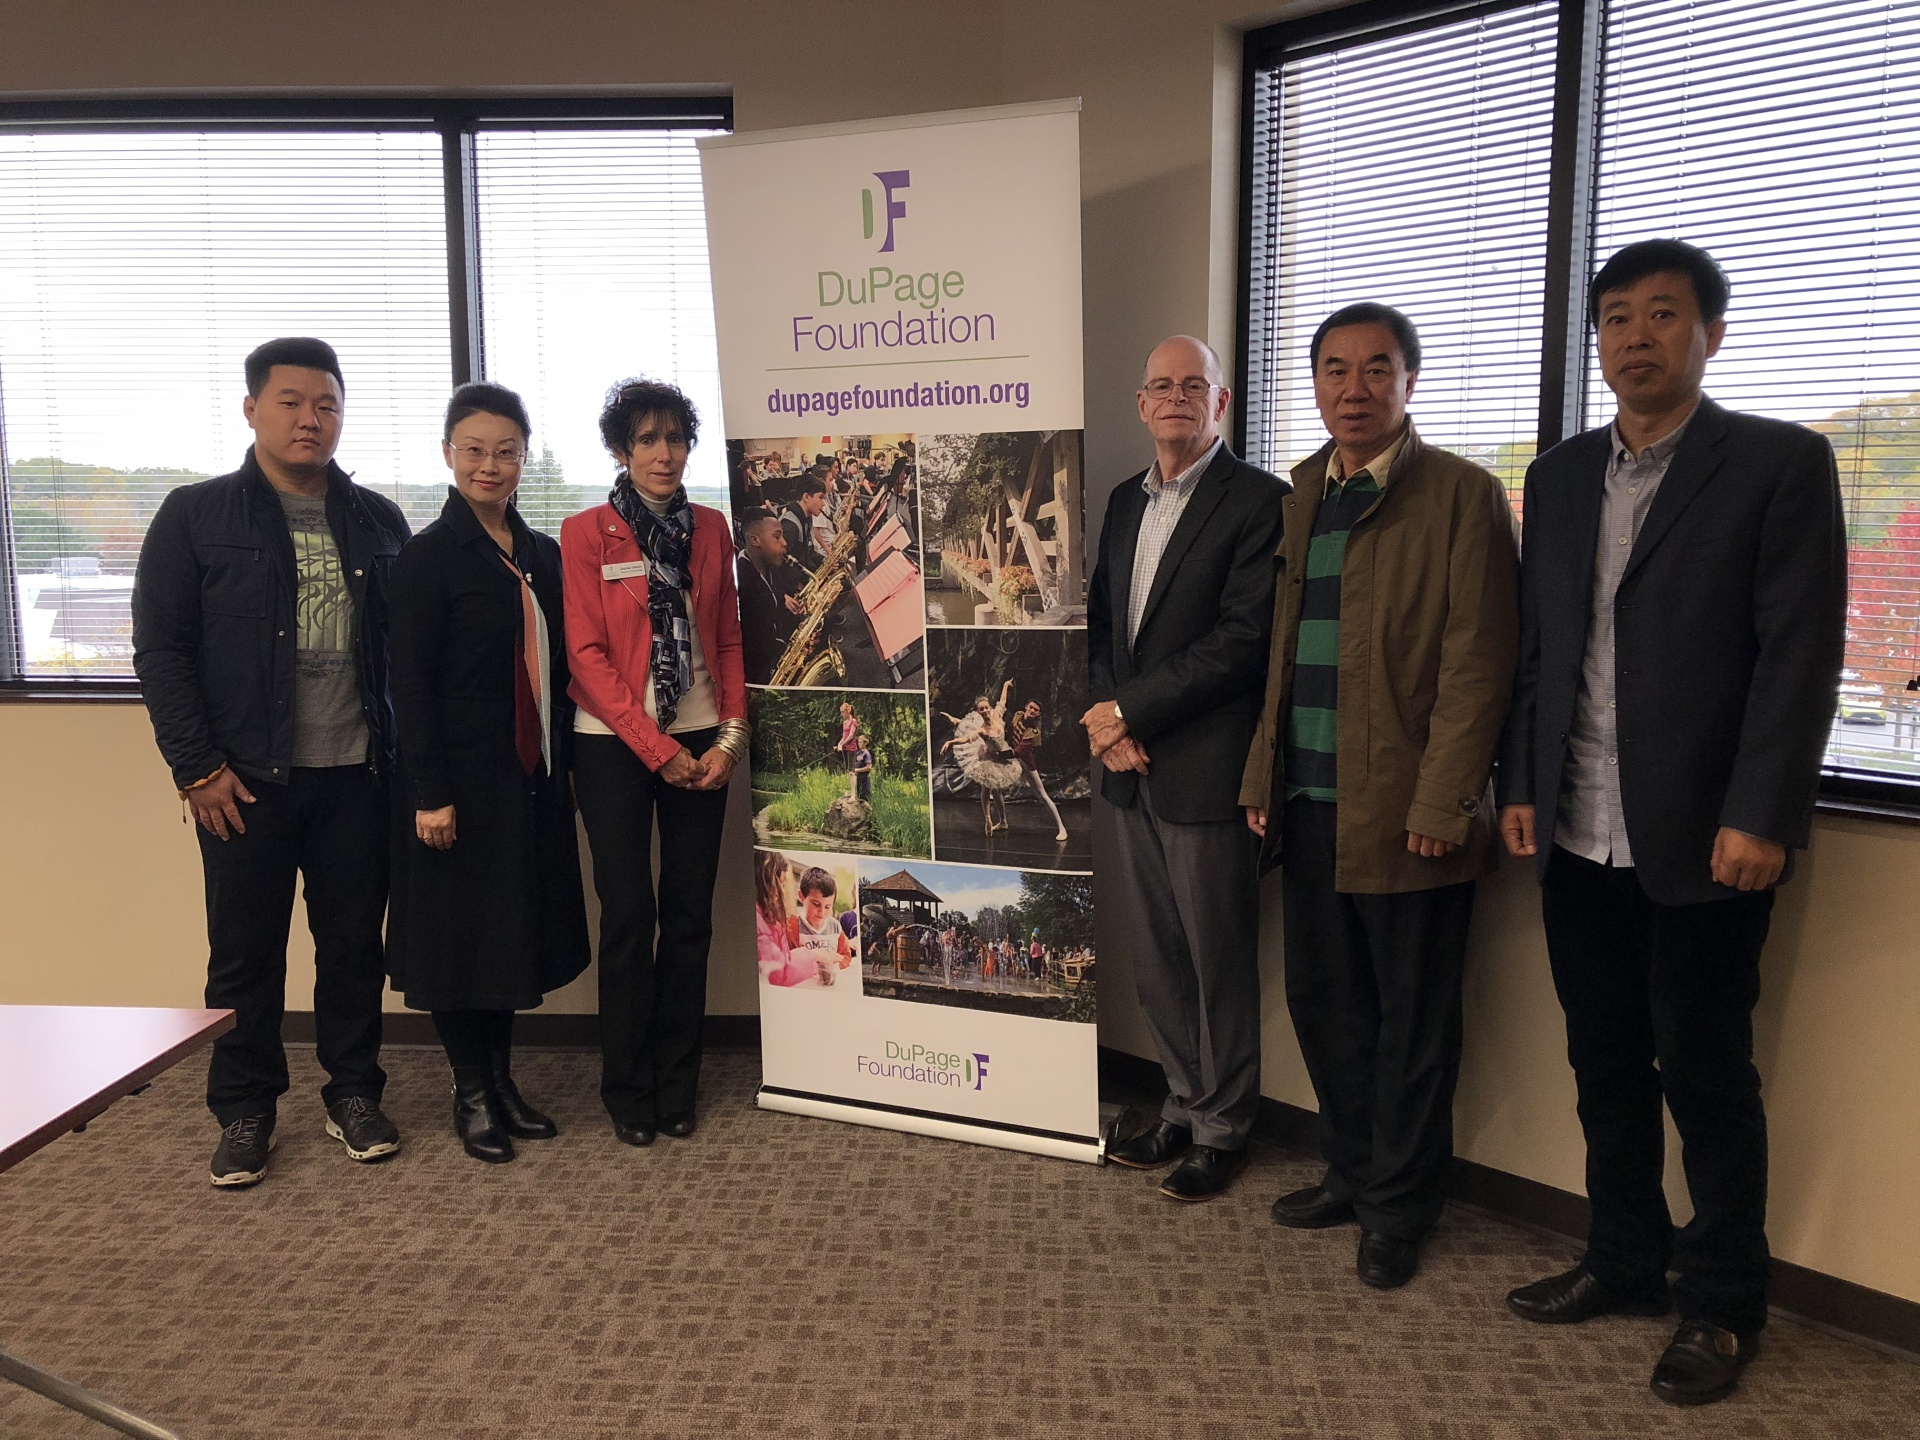 CES Organized Zibo Artists Group to Attend Arts DuPage